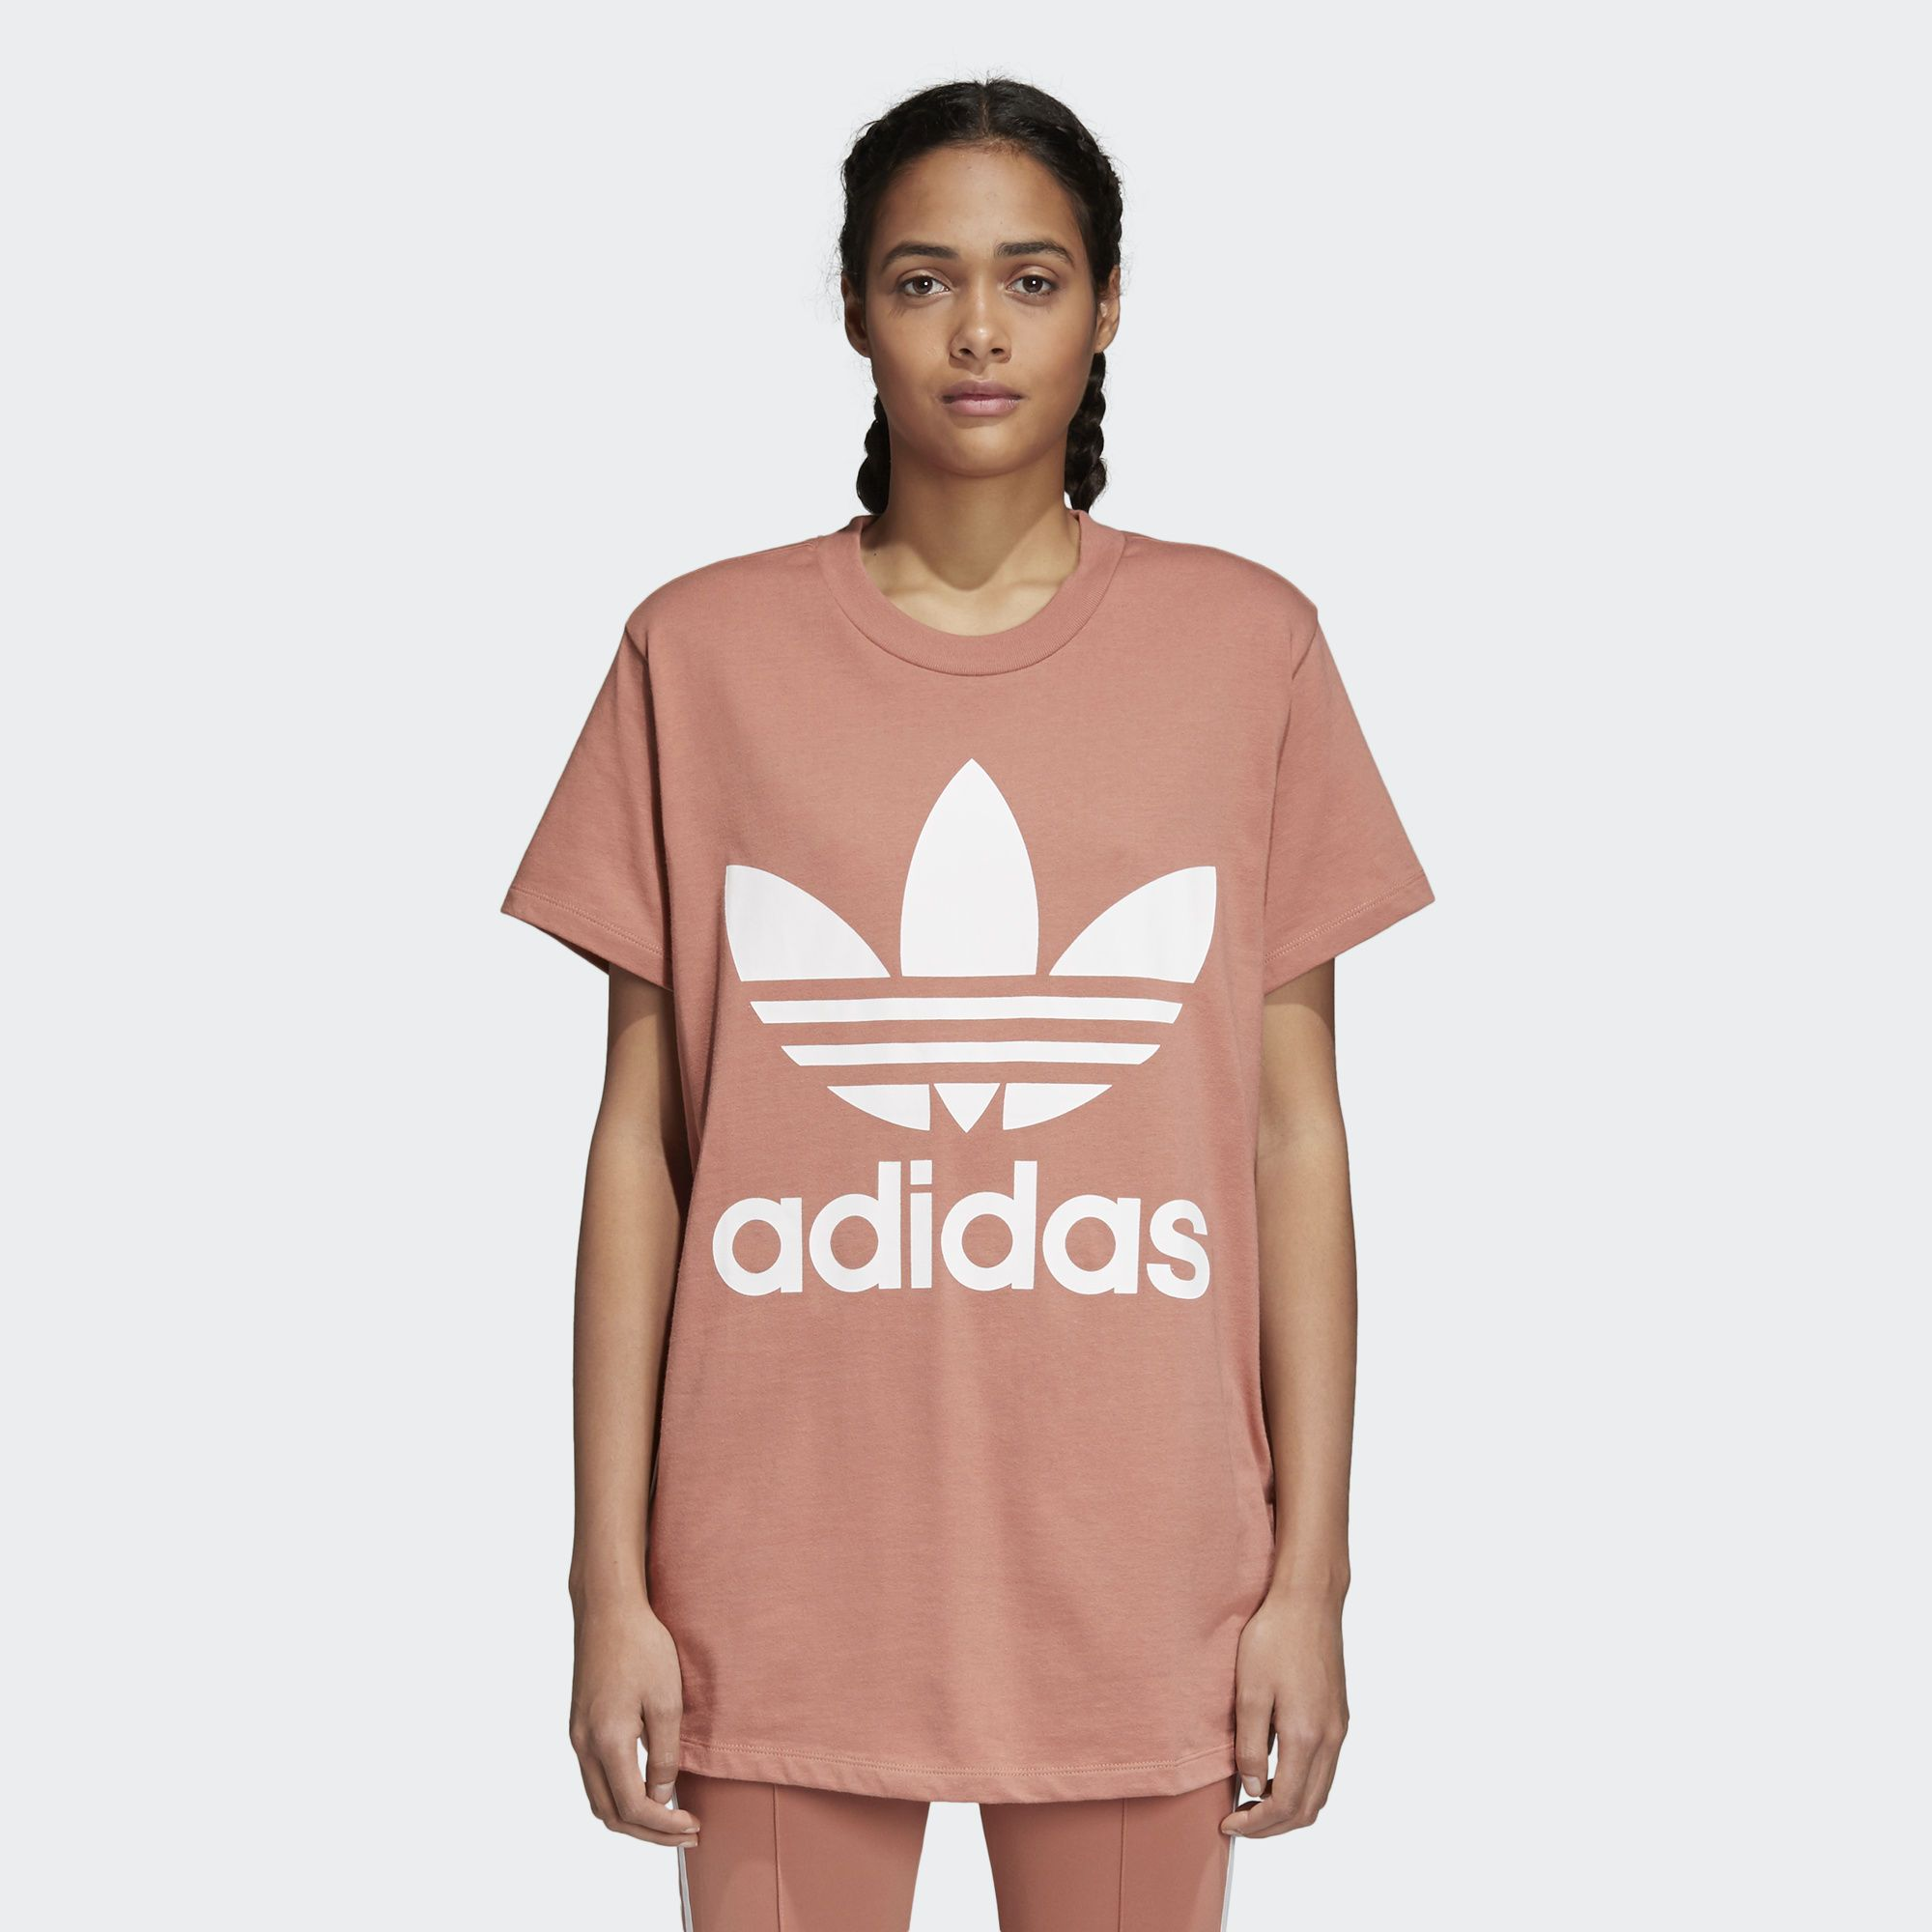 4c7a56a1a0 Shop the Trefoil Oversize Tee - Pink at adidas.com/us! See all the ...